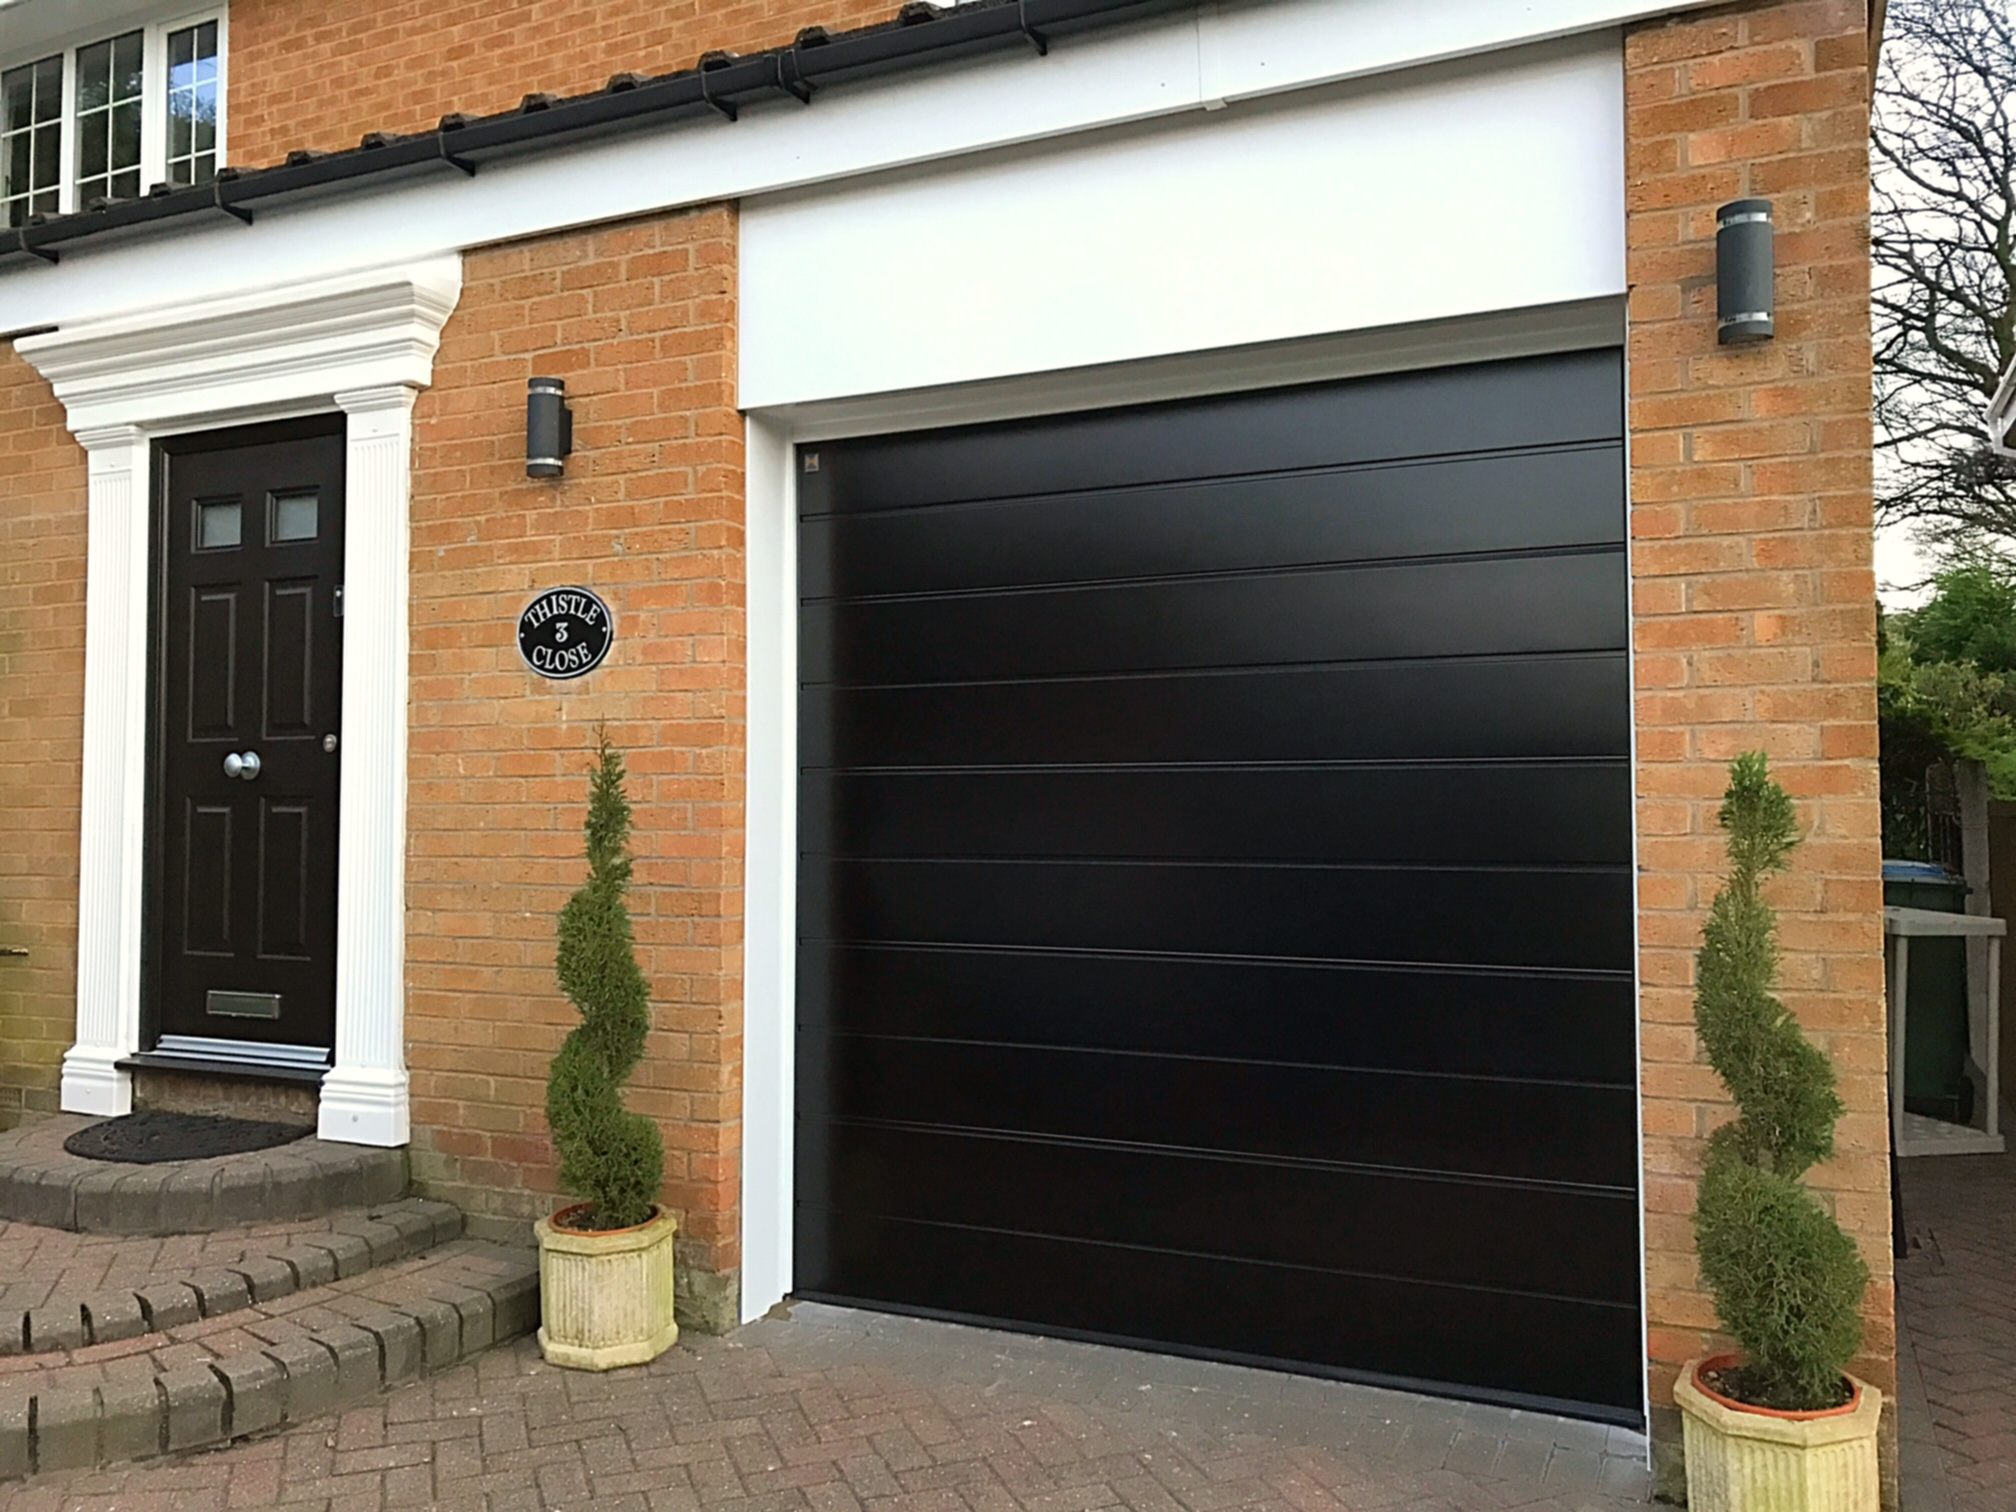 1512 #926239 Hormann Black Sectional Garage Door Pennine Garage Doors pic Black Steel Garage Doors 36512016